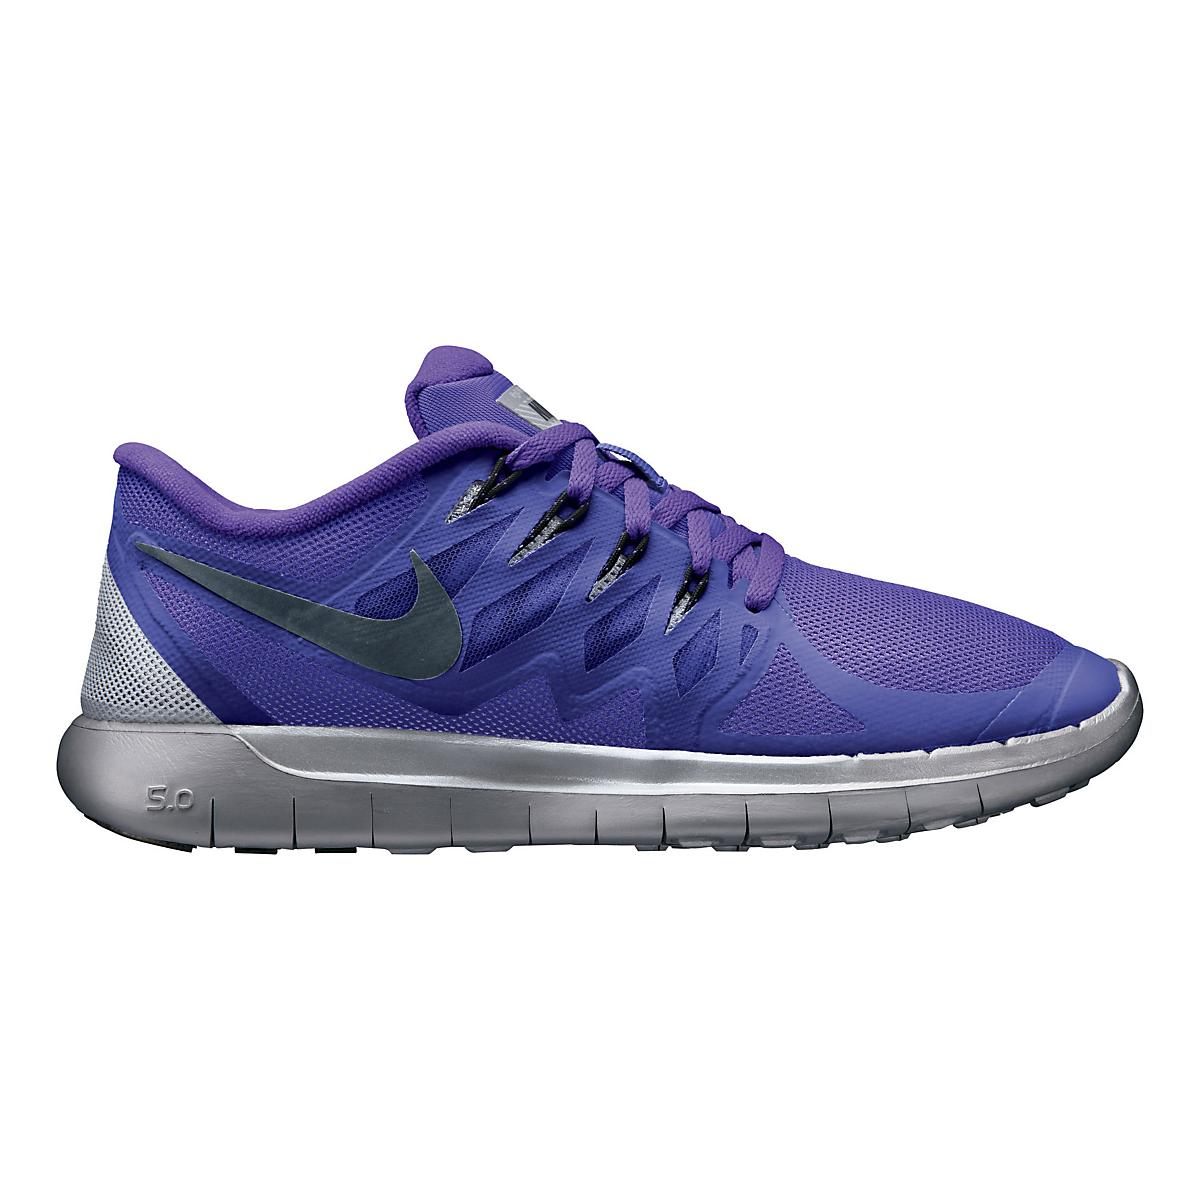 Womens Nike Free 5.0 Flash Running Shoe at Road Runner Sports a334113173